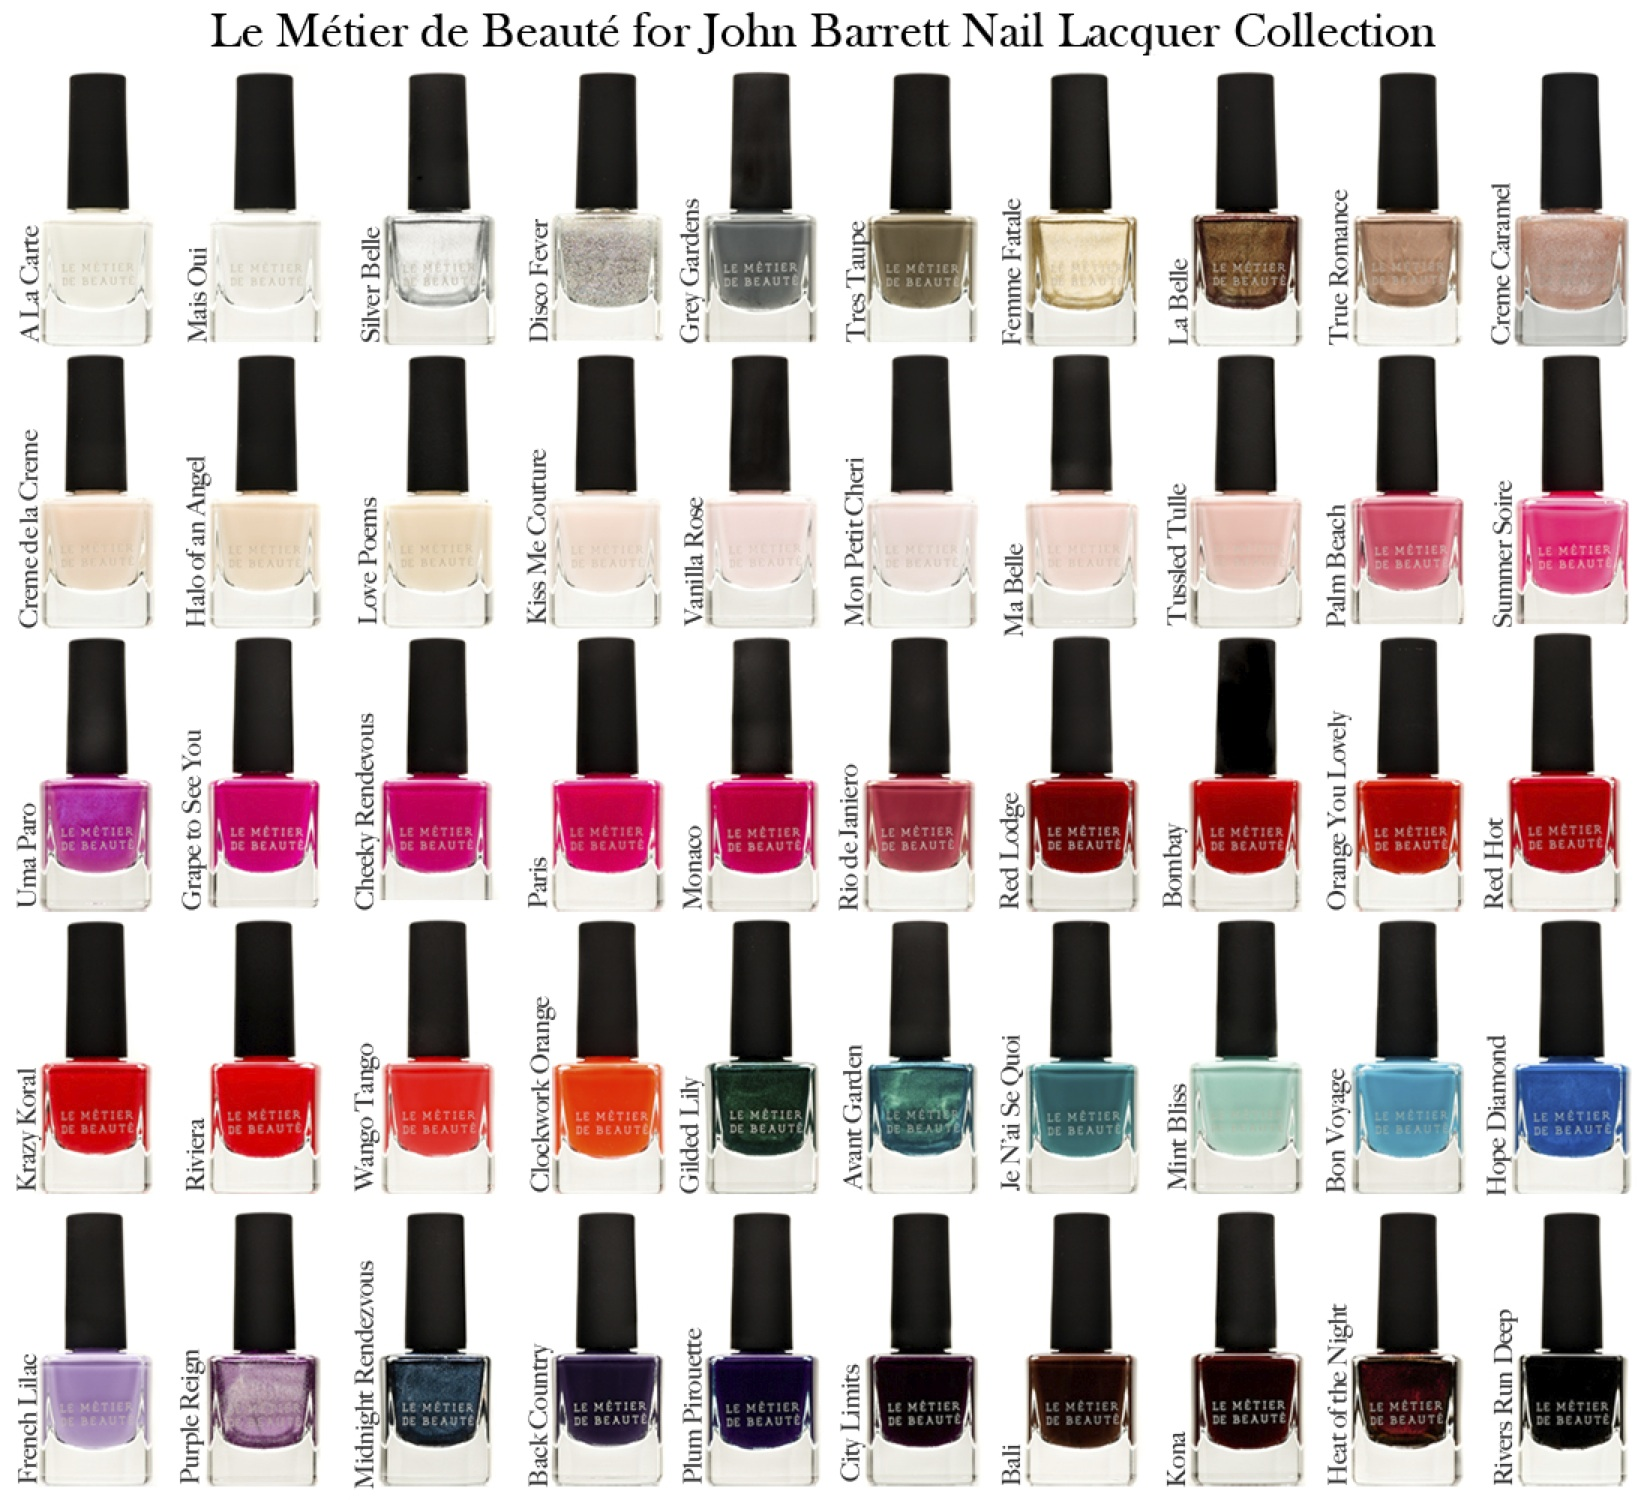 LMdBforJBS_NailLacquer_Colors